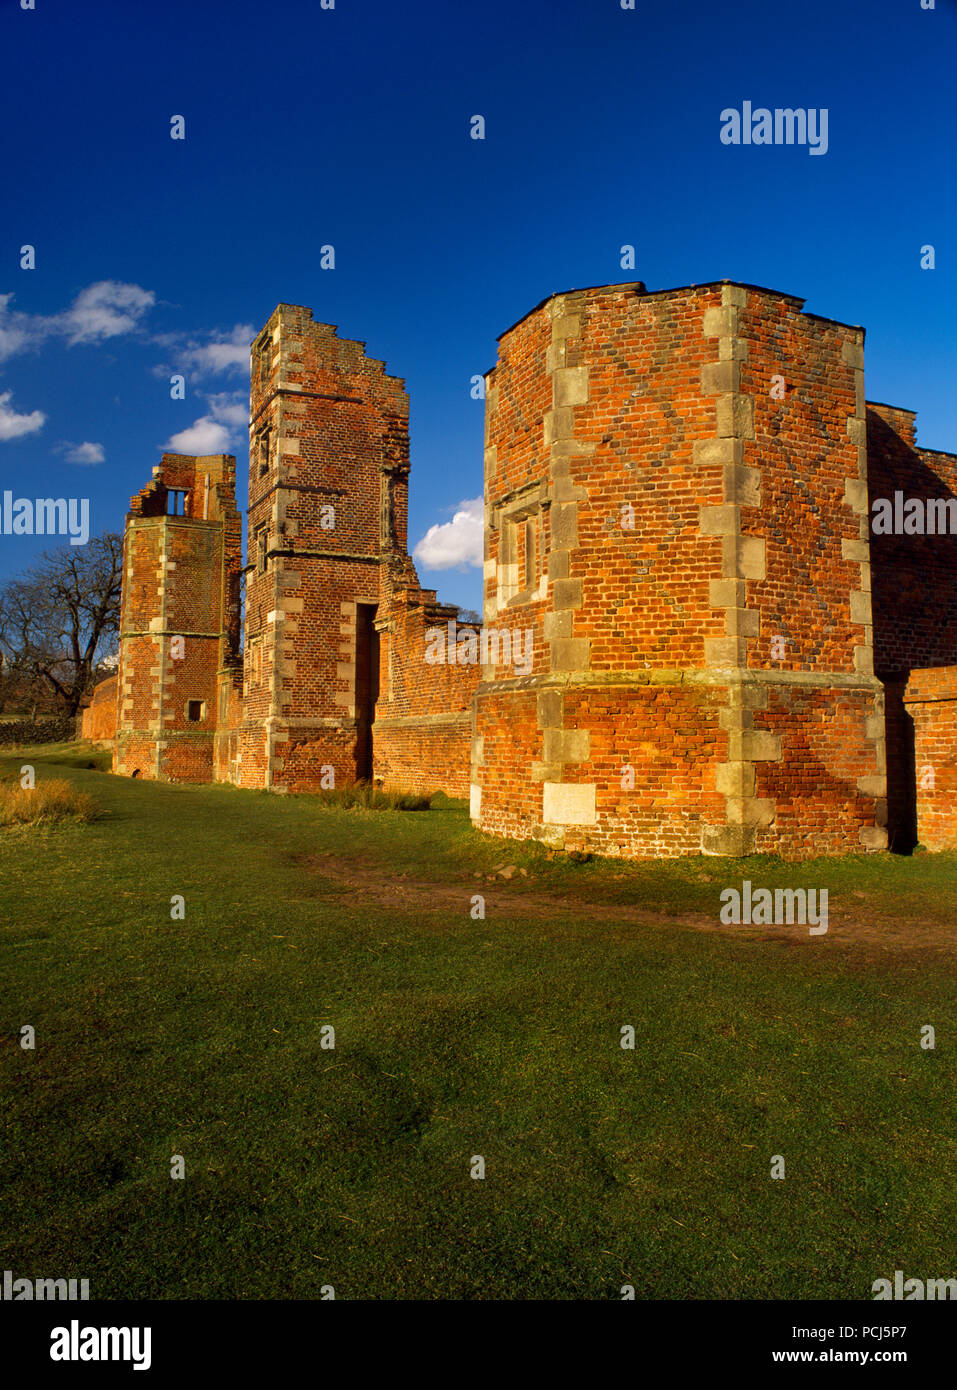 View NNE of Bradgate House, Leicestershire, UK, childhood home of Lady Jane Grey: 16-year-old uncrowned 'Queen of England' for 9 days 10-19 July 1553. - Stock Image